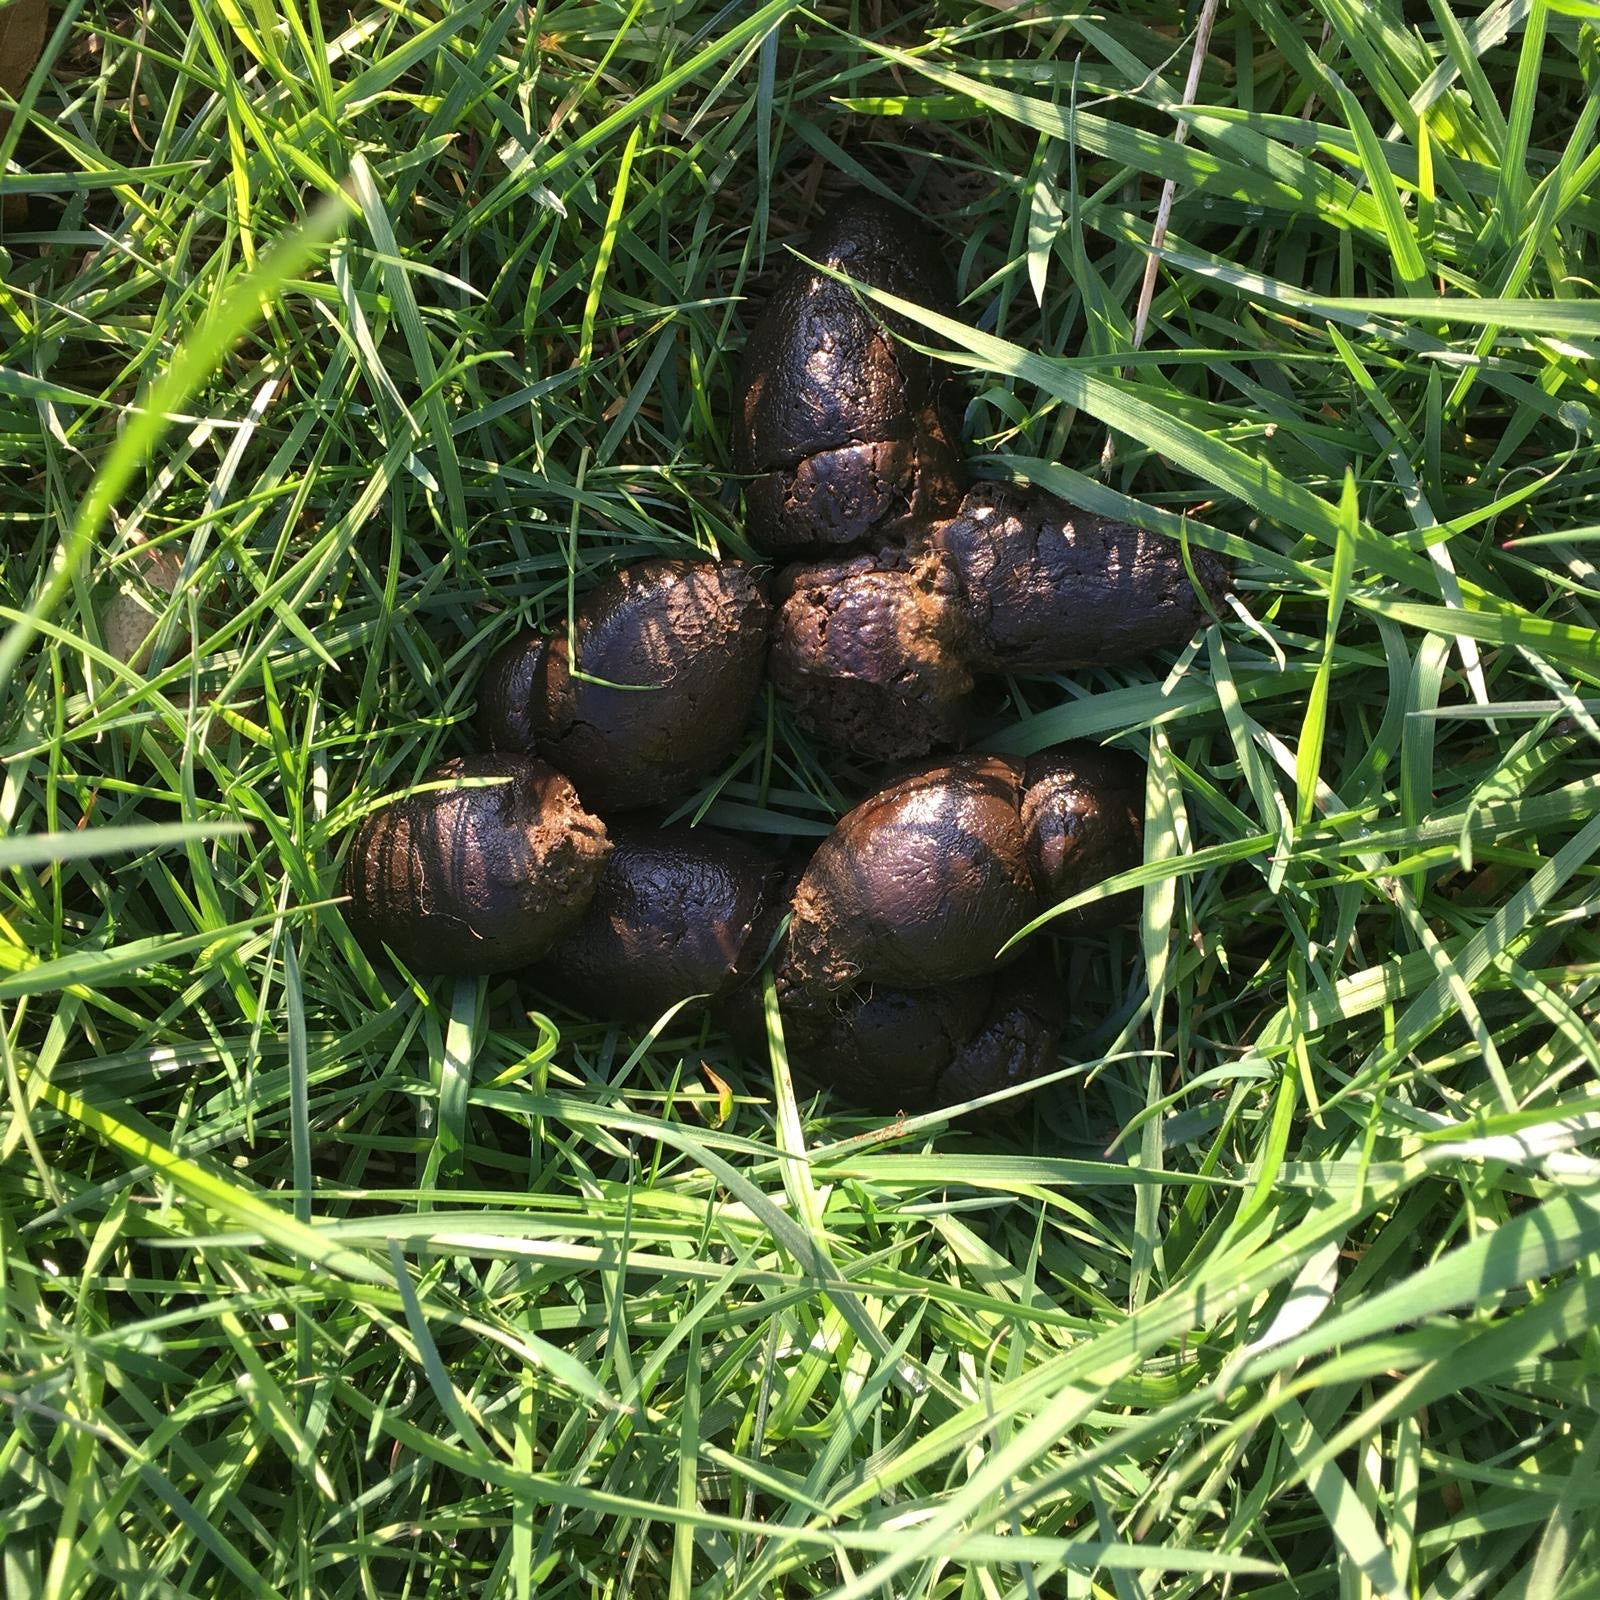 Want a Dog Poo you can Pick Up? Then read on...